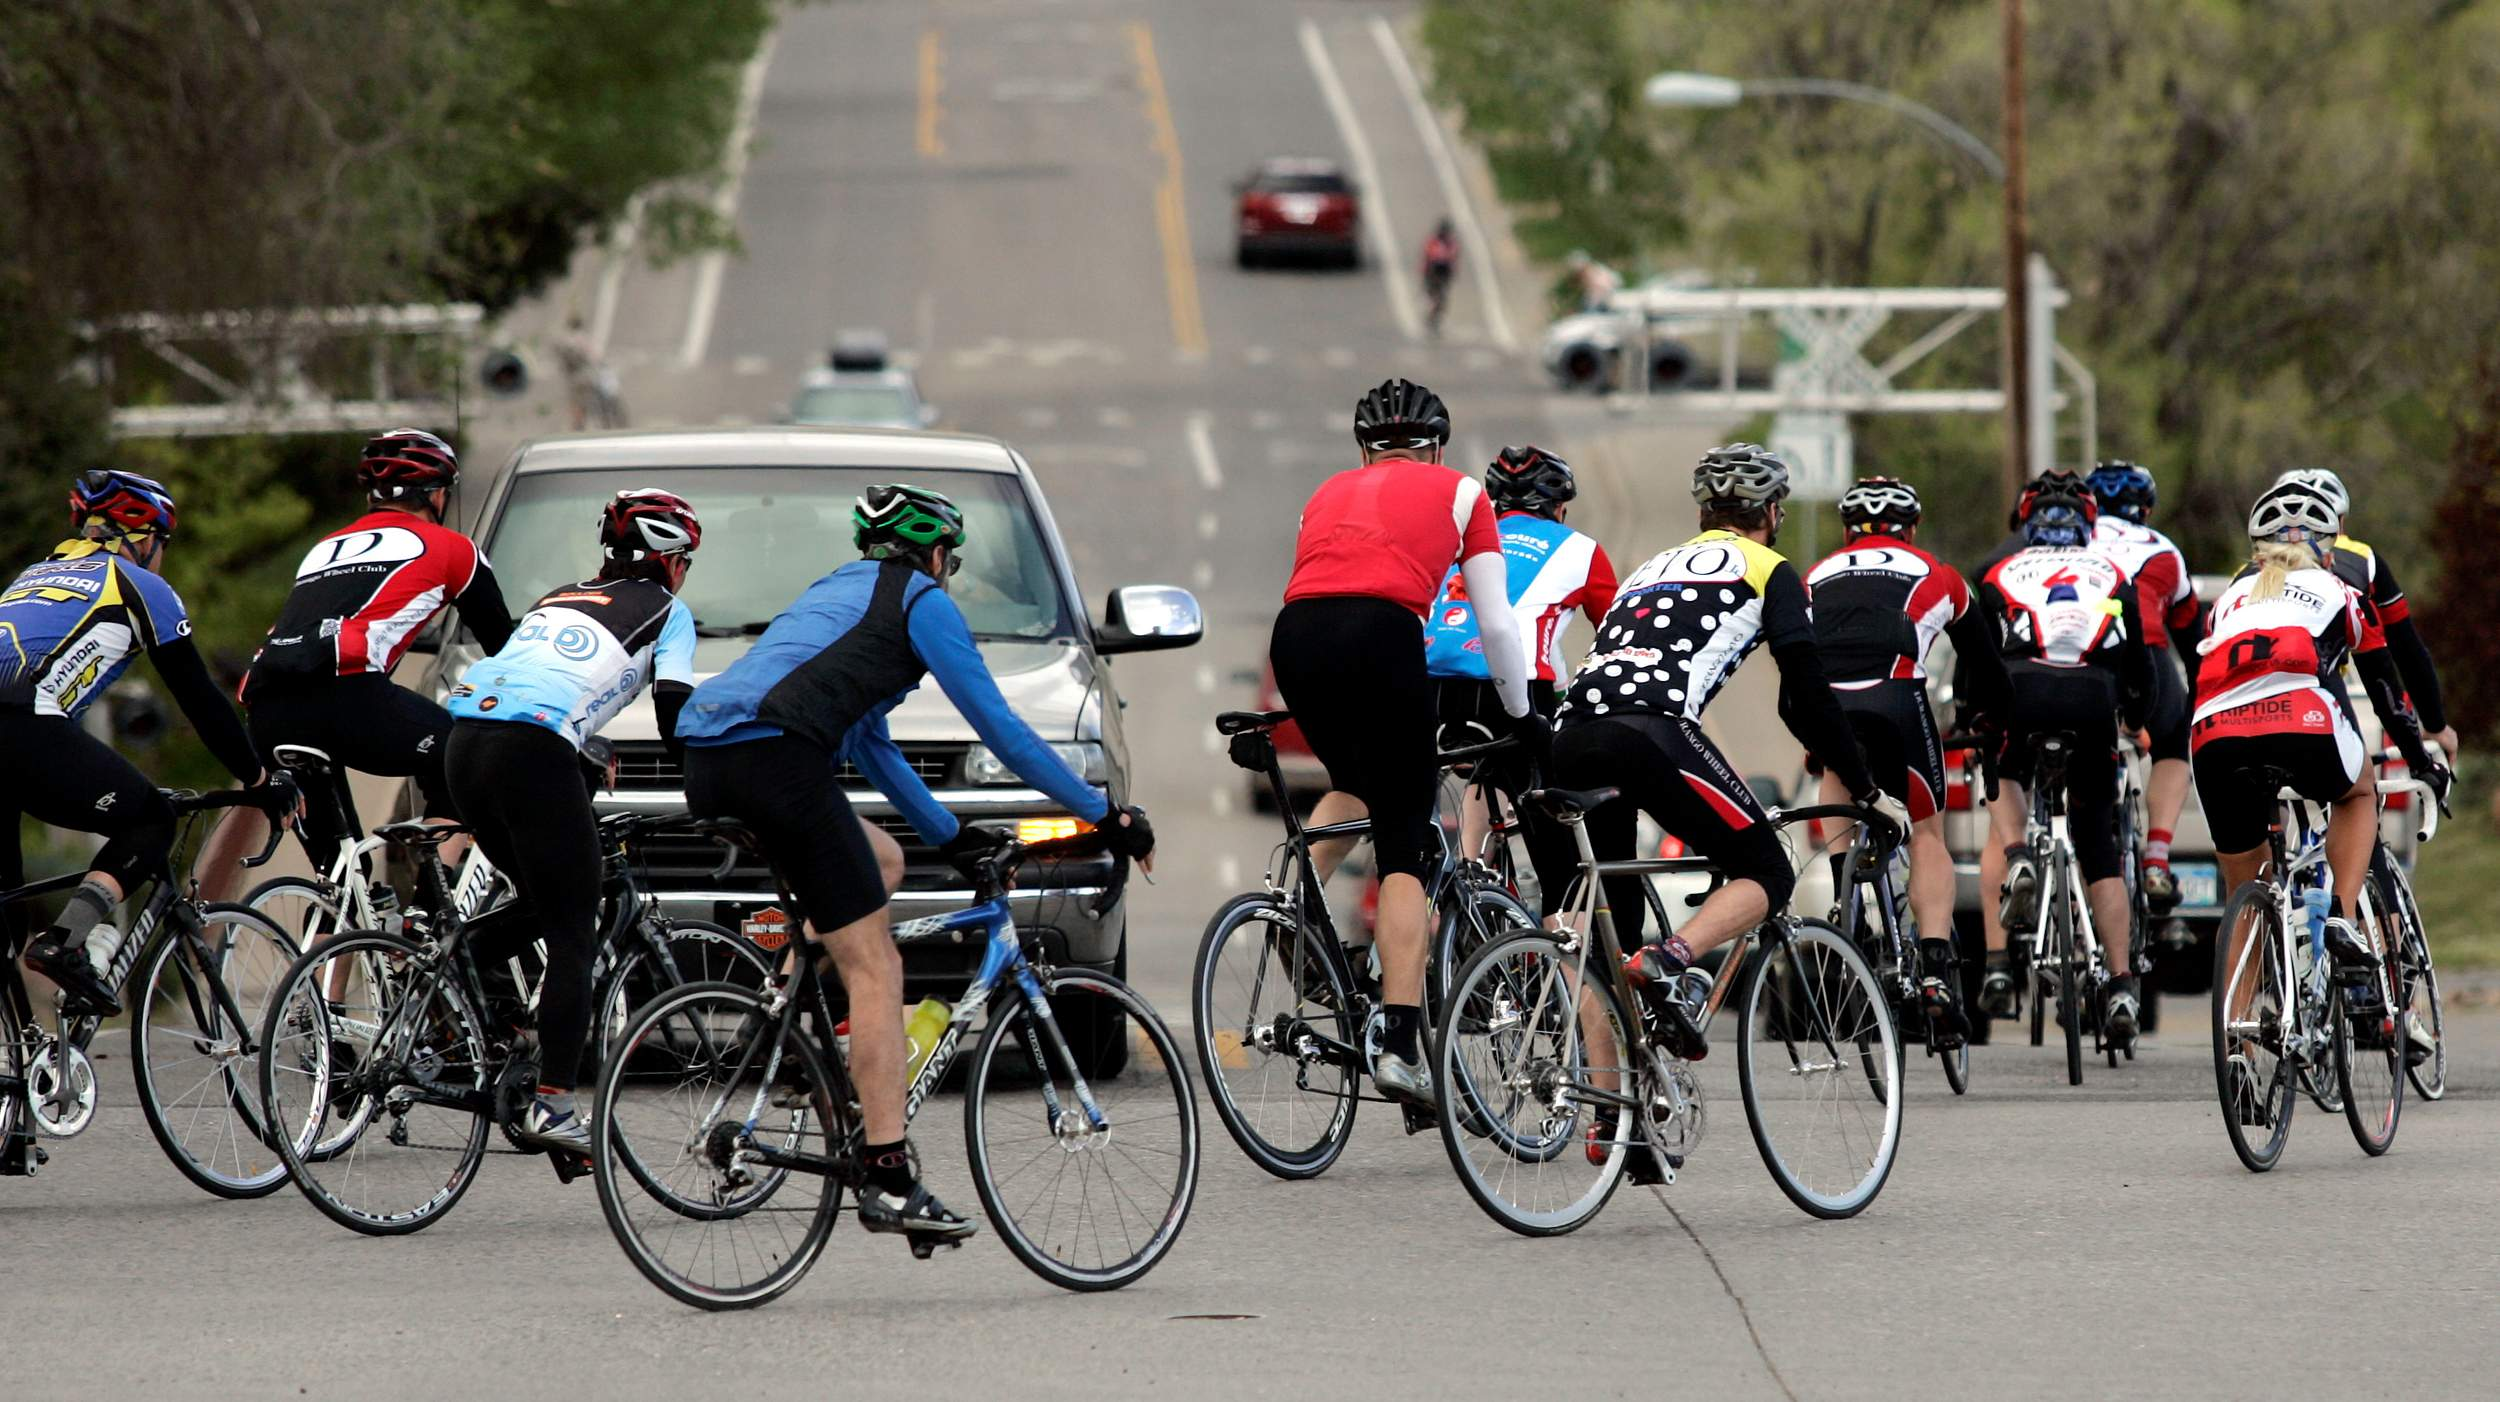 Cyclist-driver conflicts ramp up with warmer weather